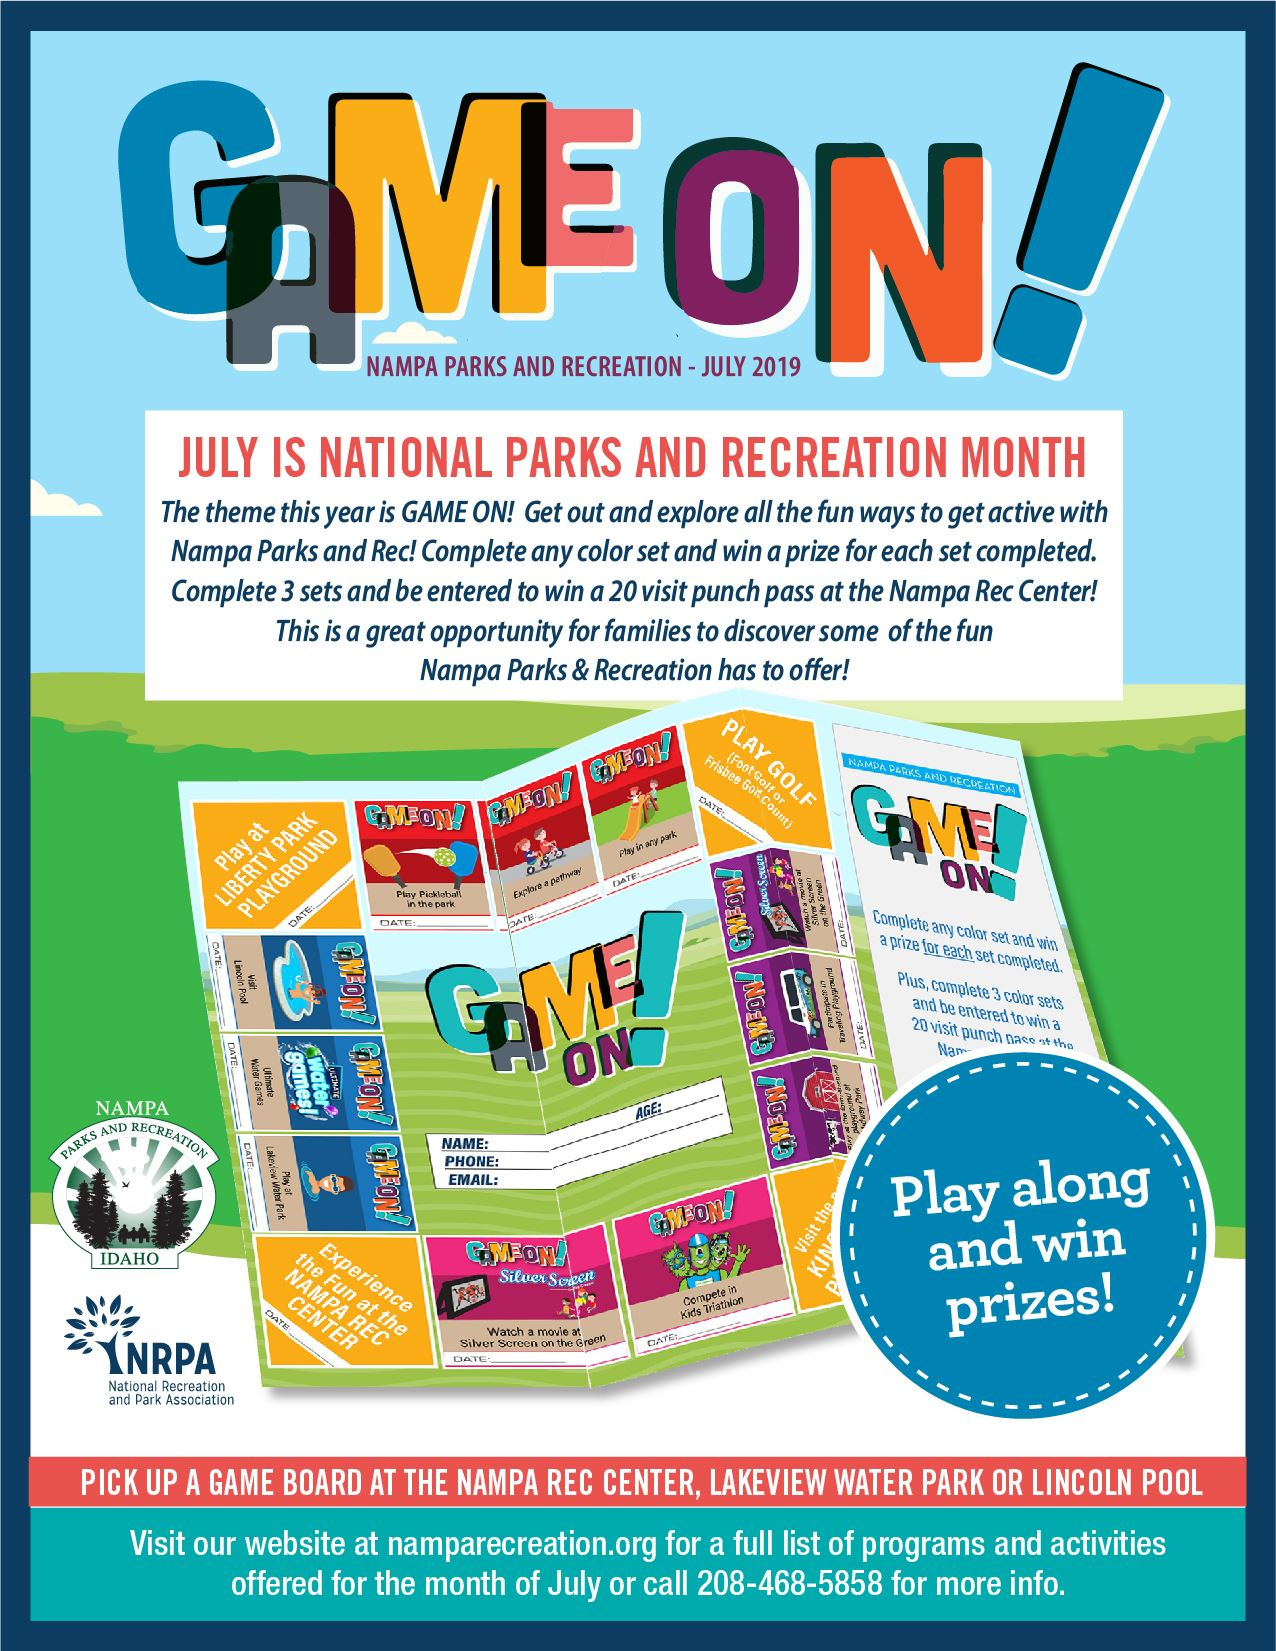 06 26 2019 NRPA July 2019 GAME ONeflyer